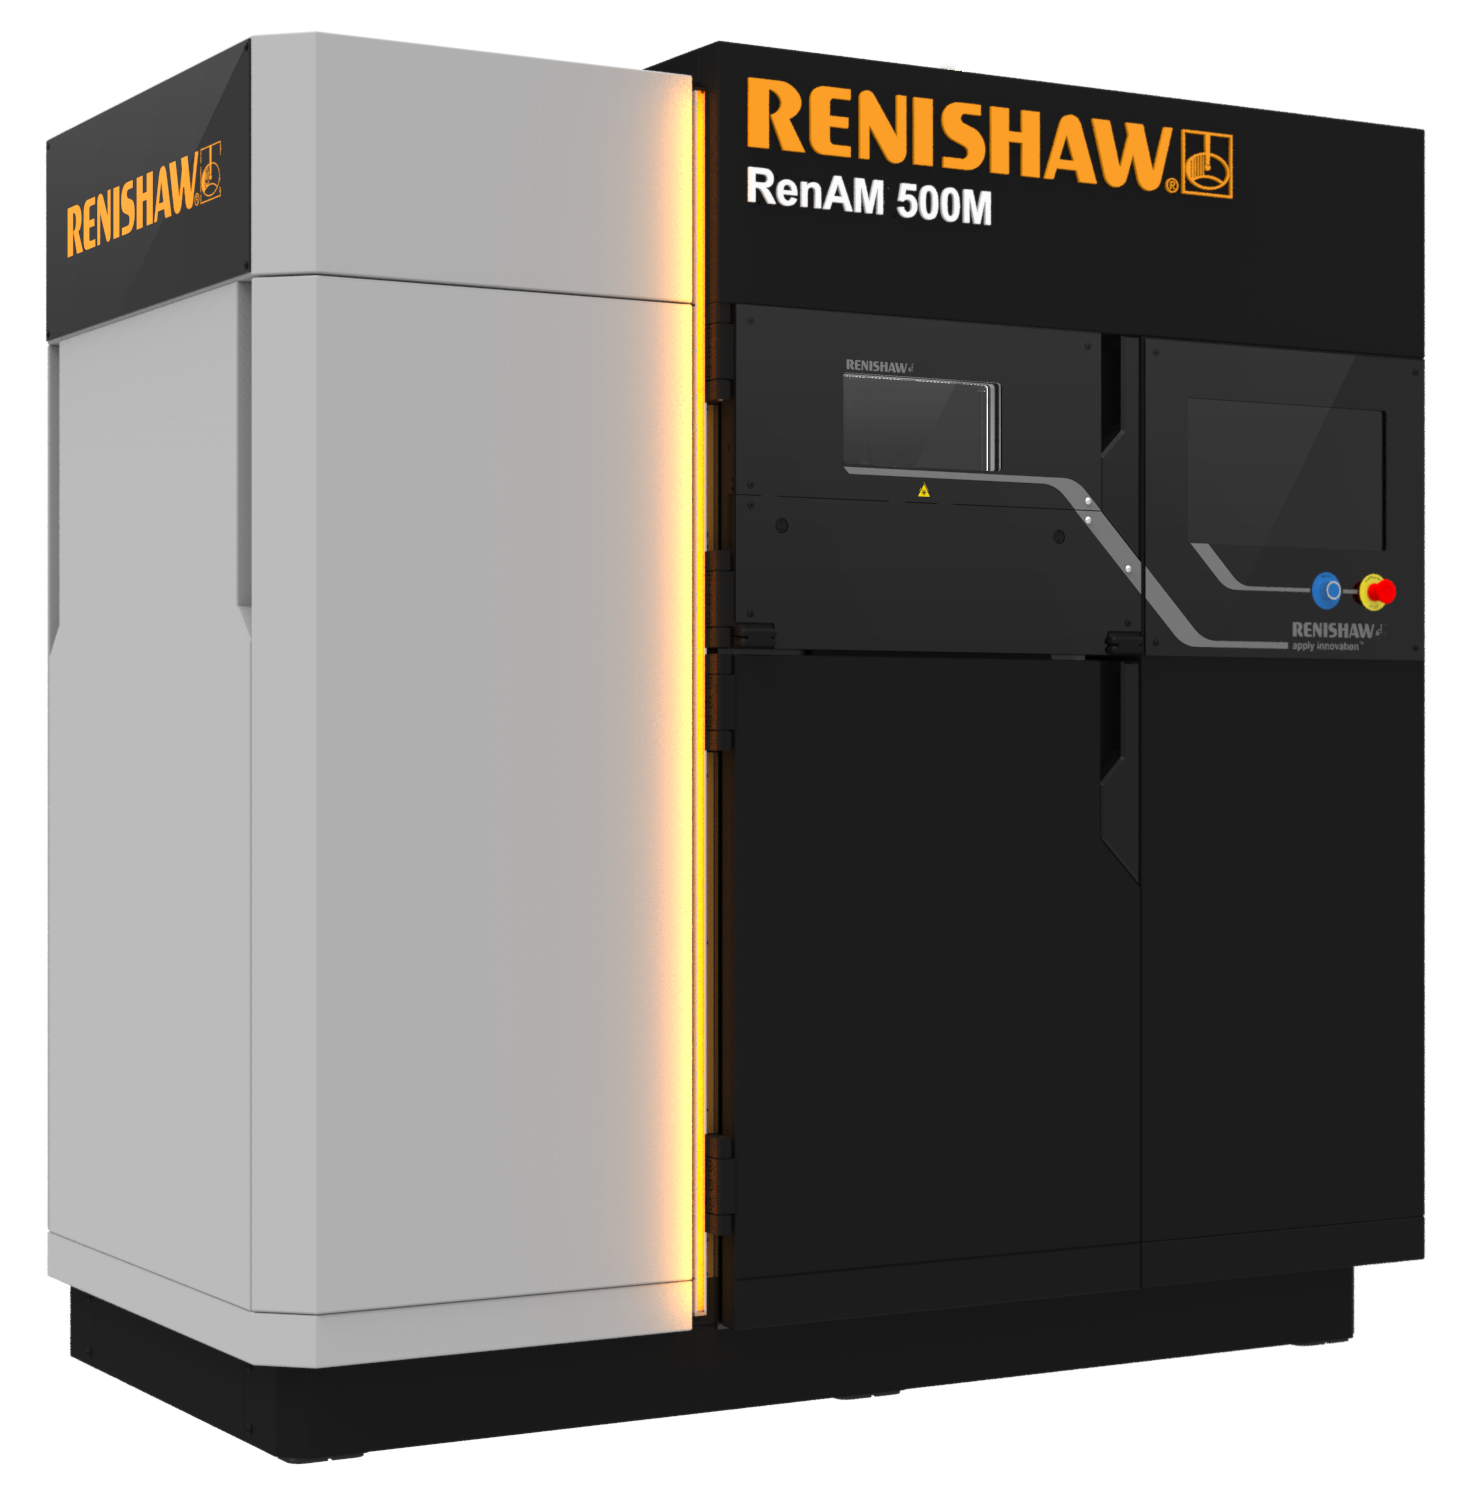 Renishaw to present latest in advanced manufacturing technology at IMTS